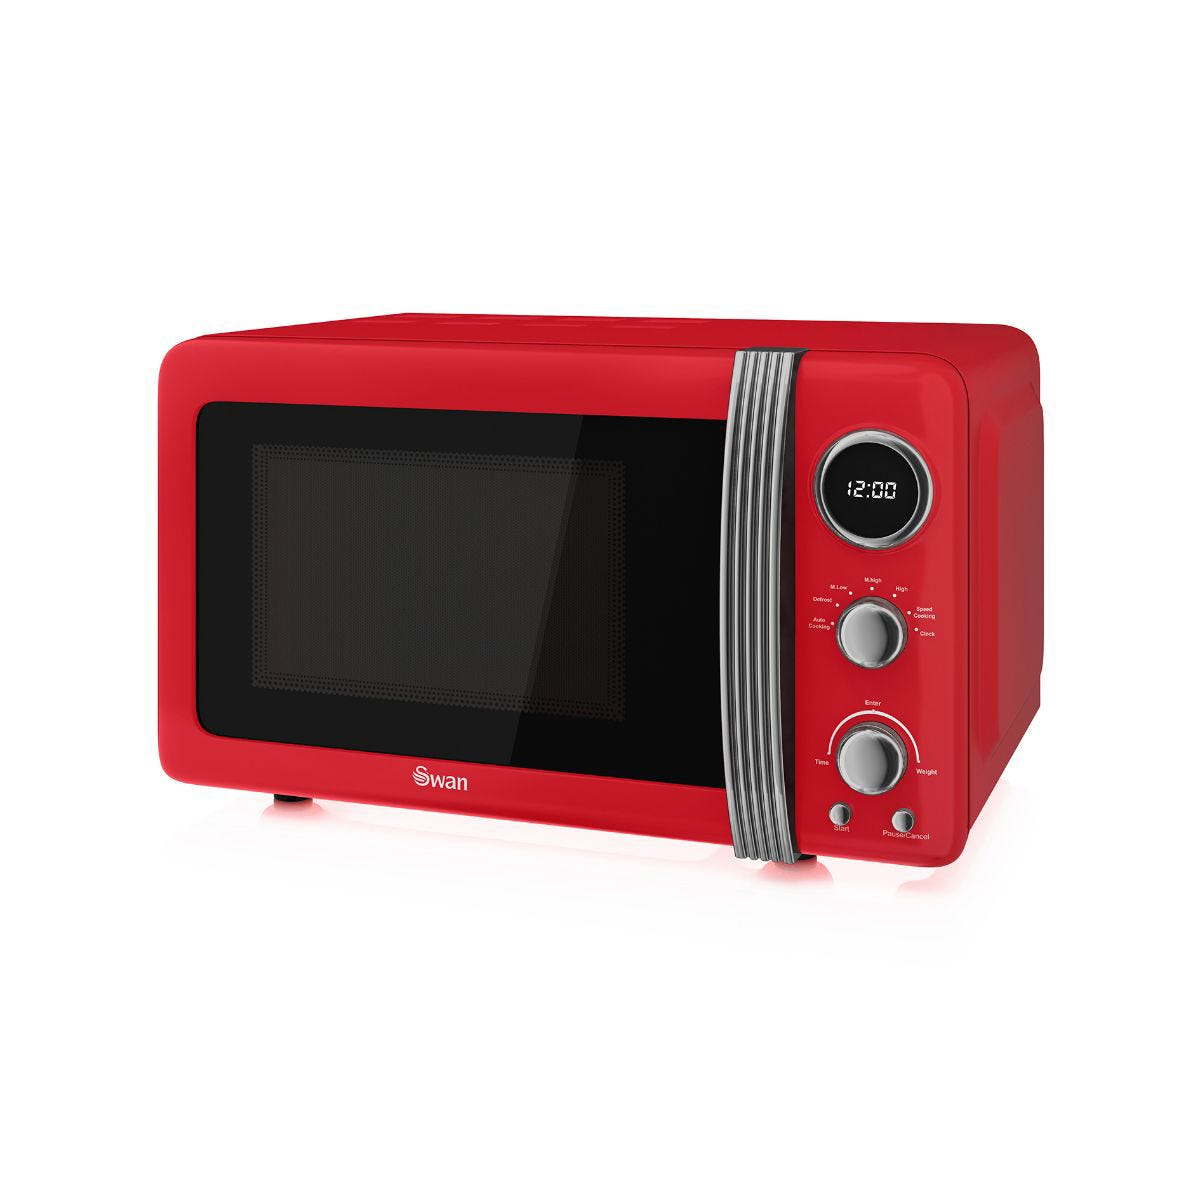 Image of 800W Retro Digital Microwave, Red